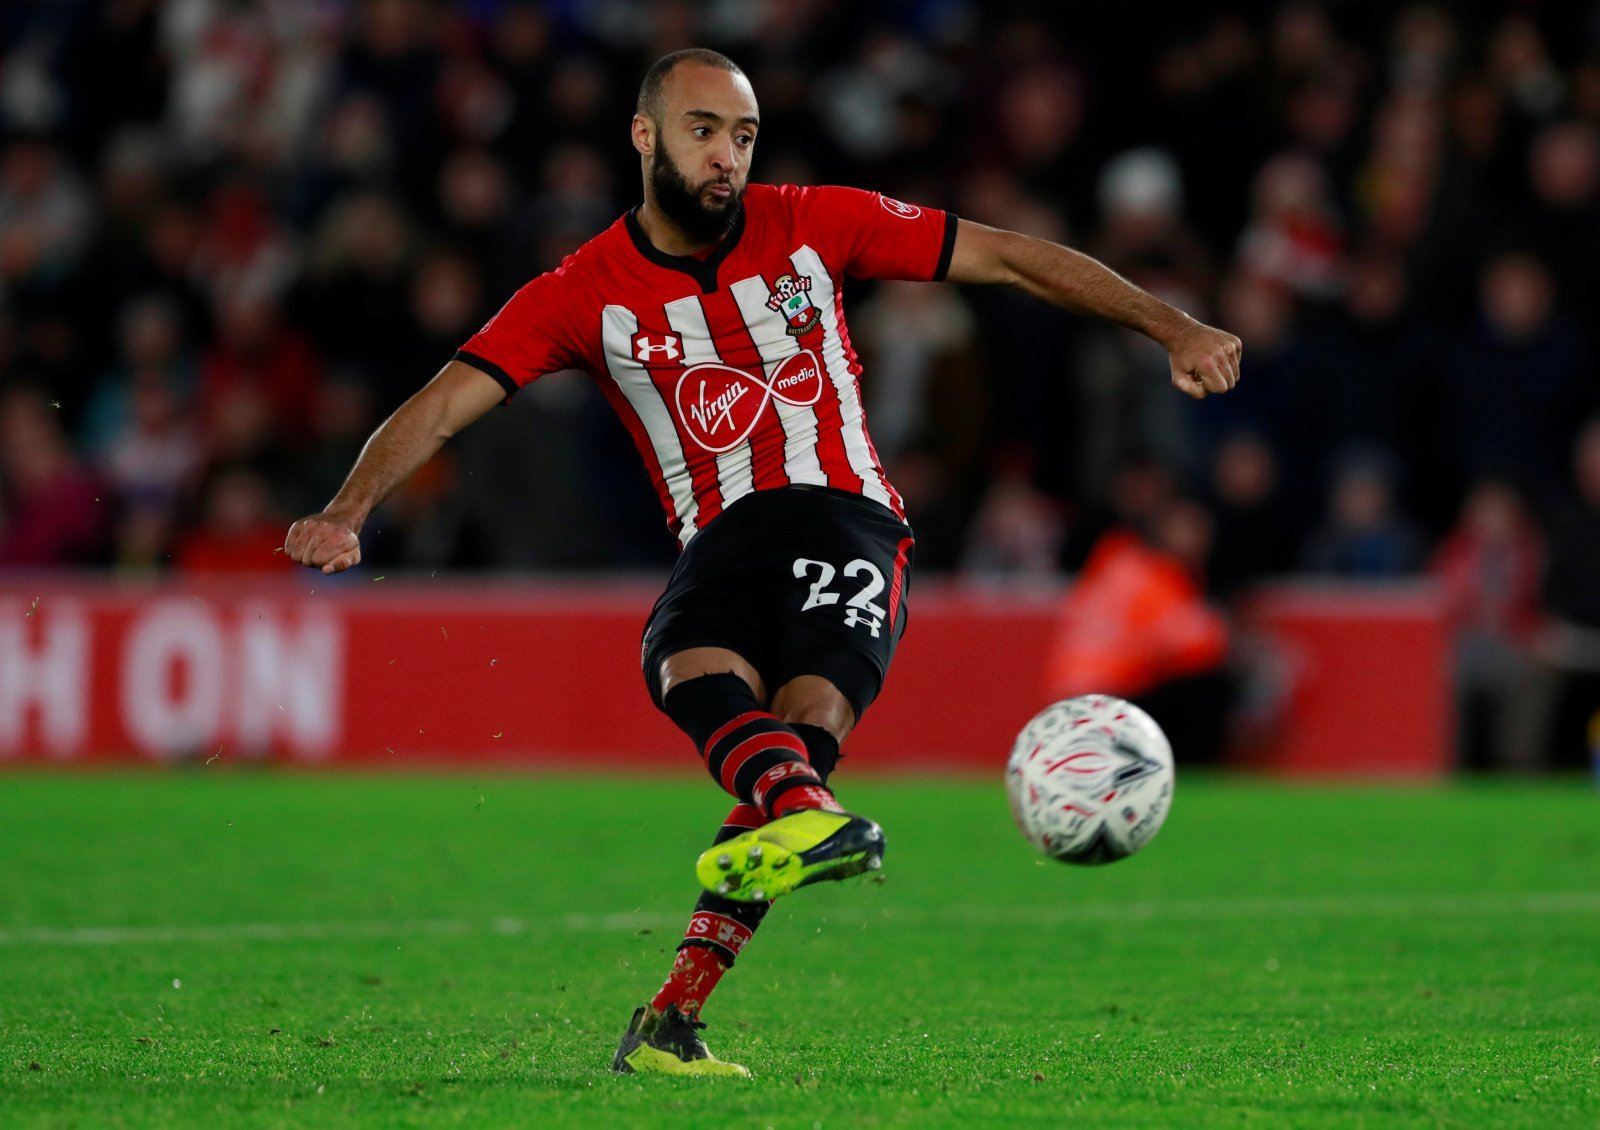 Southampton: Banger is both right and wrong when it comes to Redmond and Ings